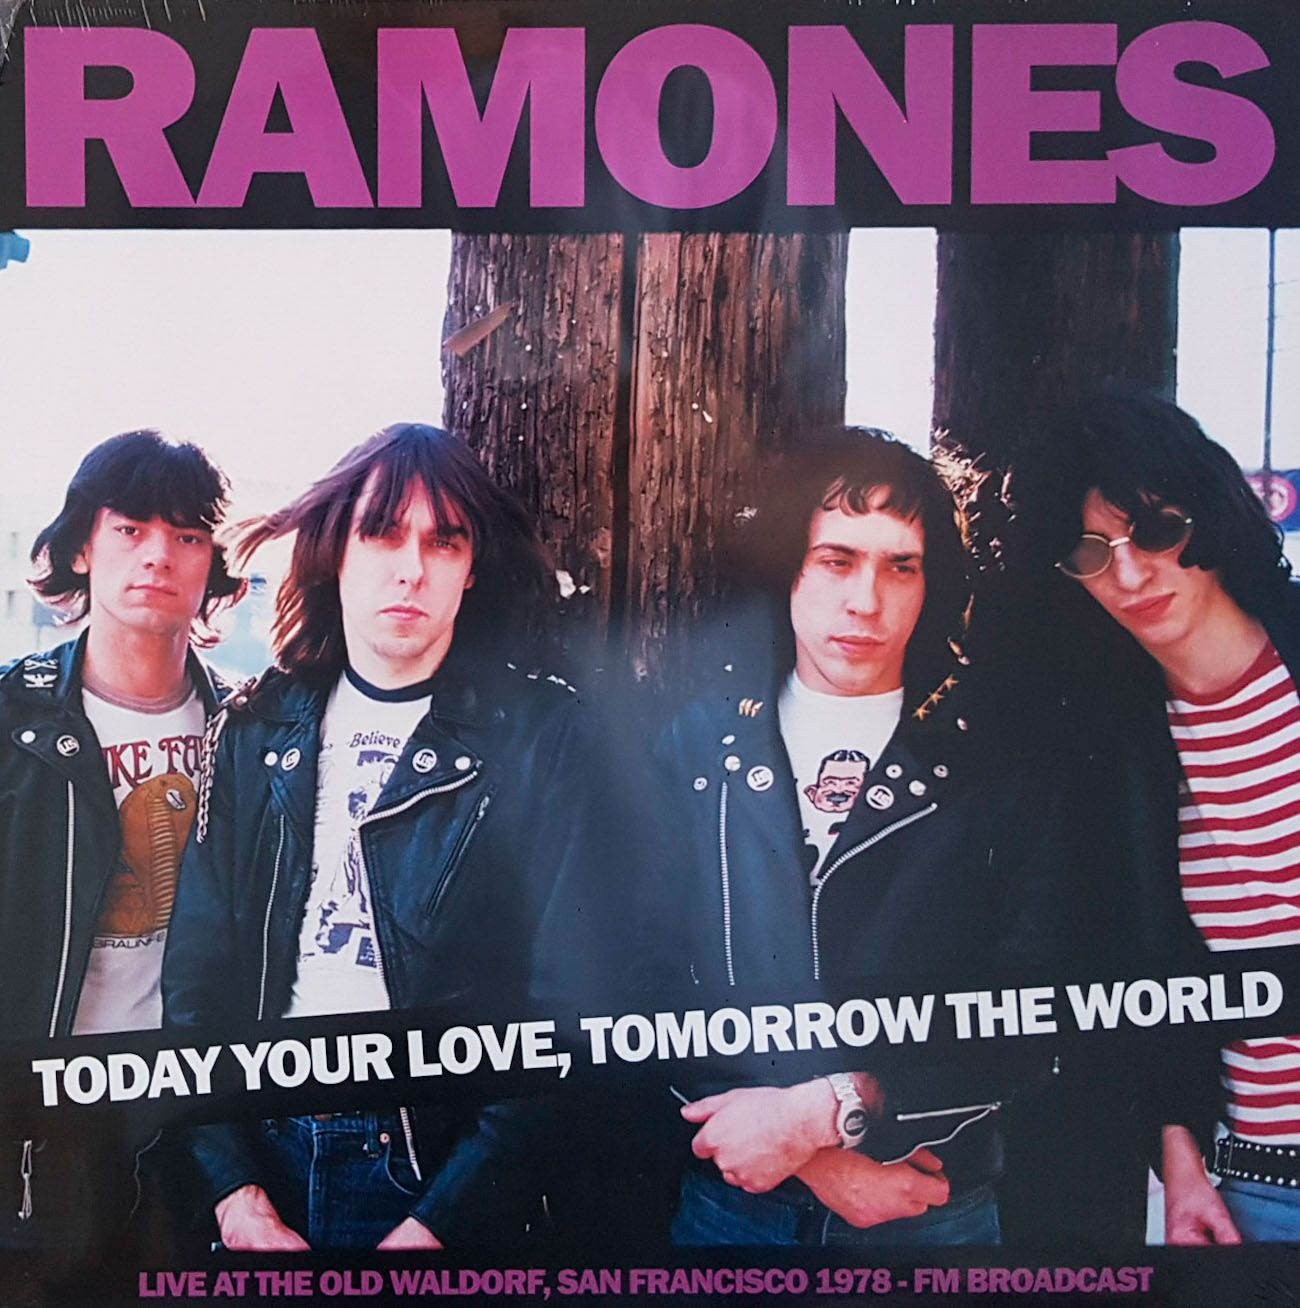 Lp Vinil Ramones Today Your Love, Tomorrow The World